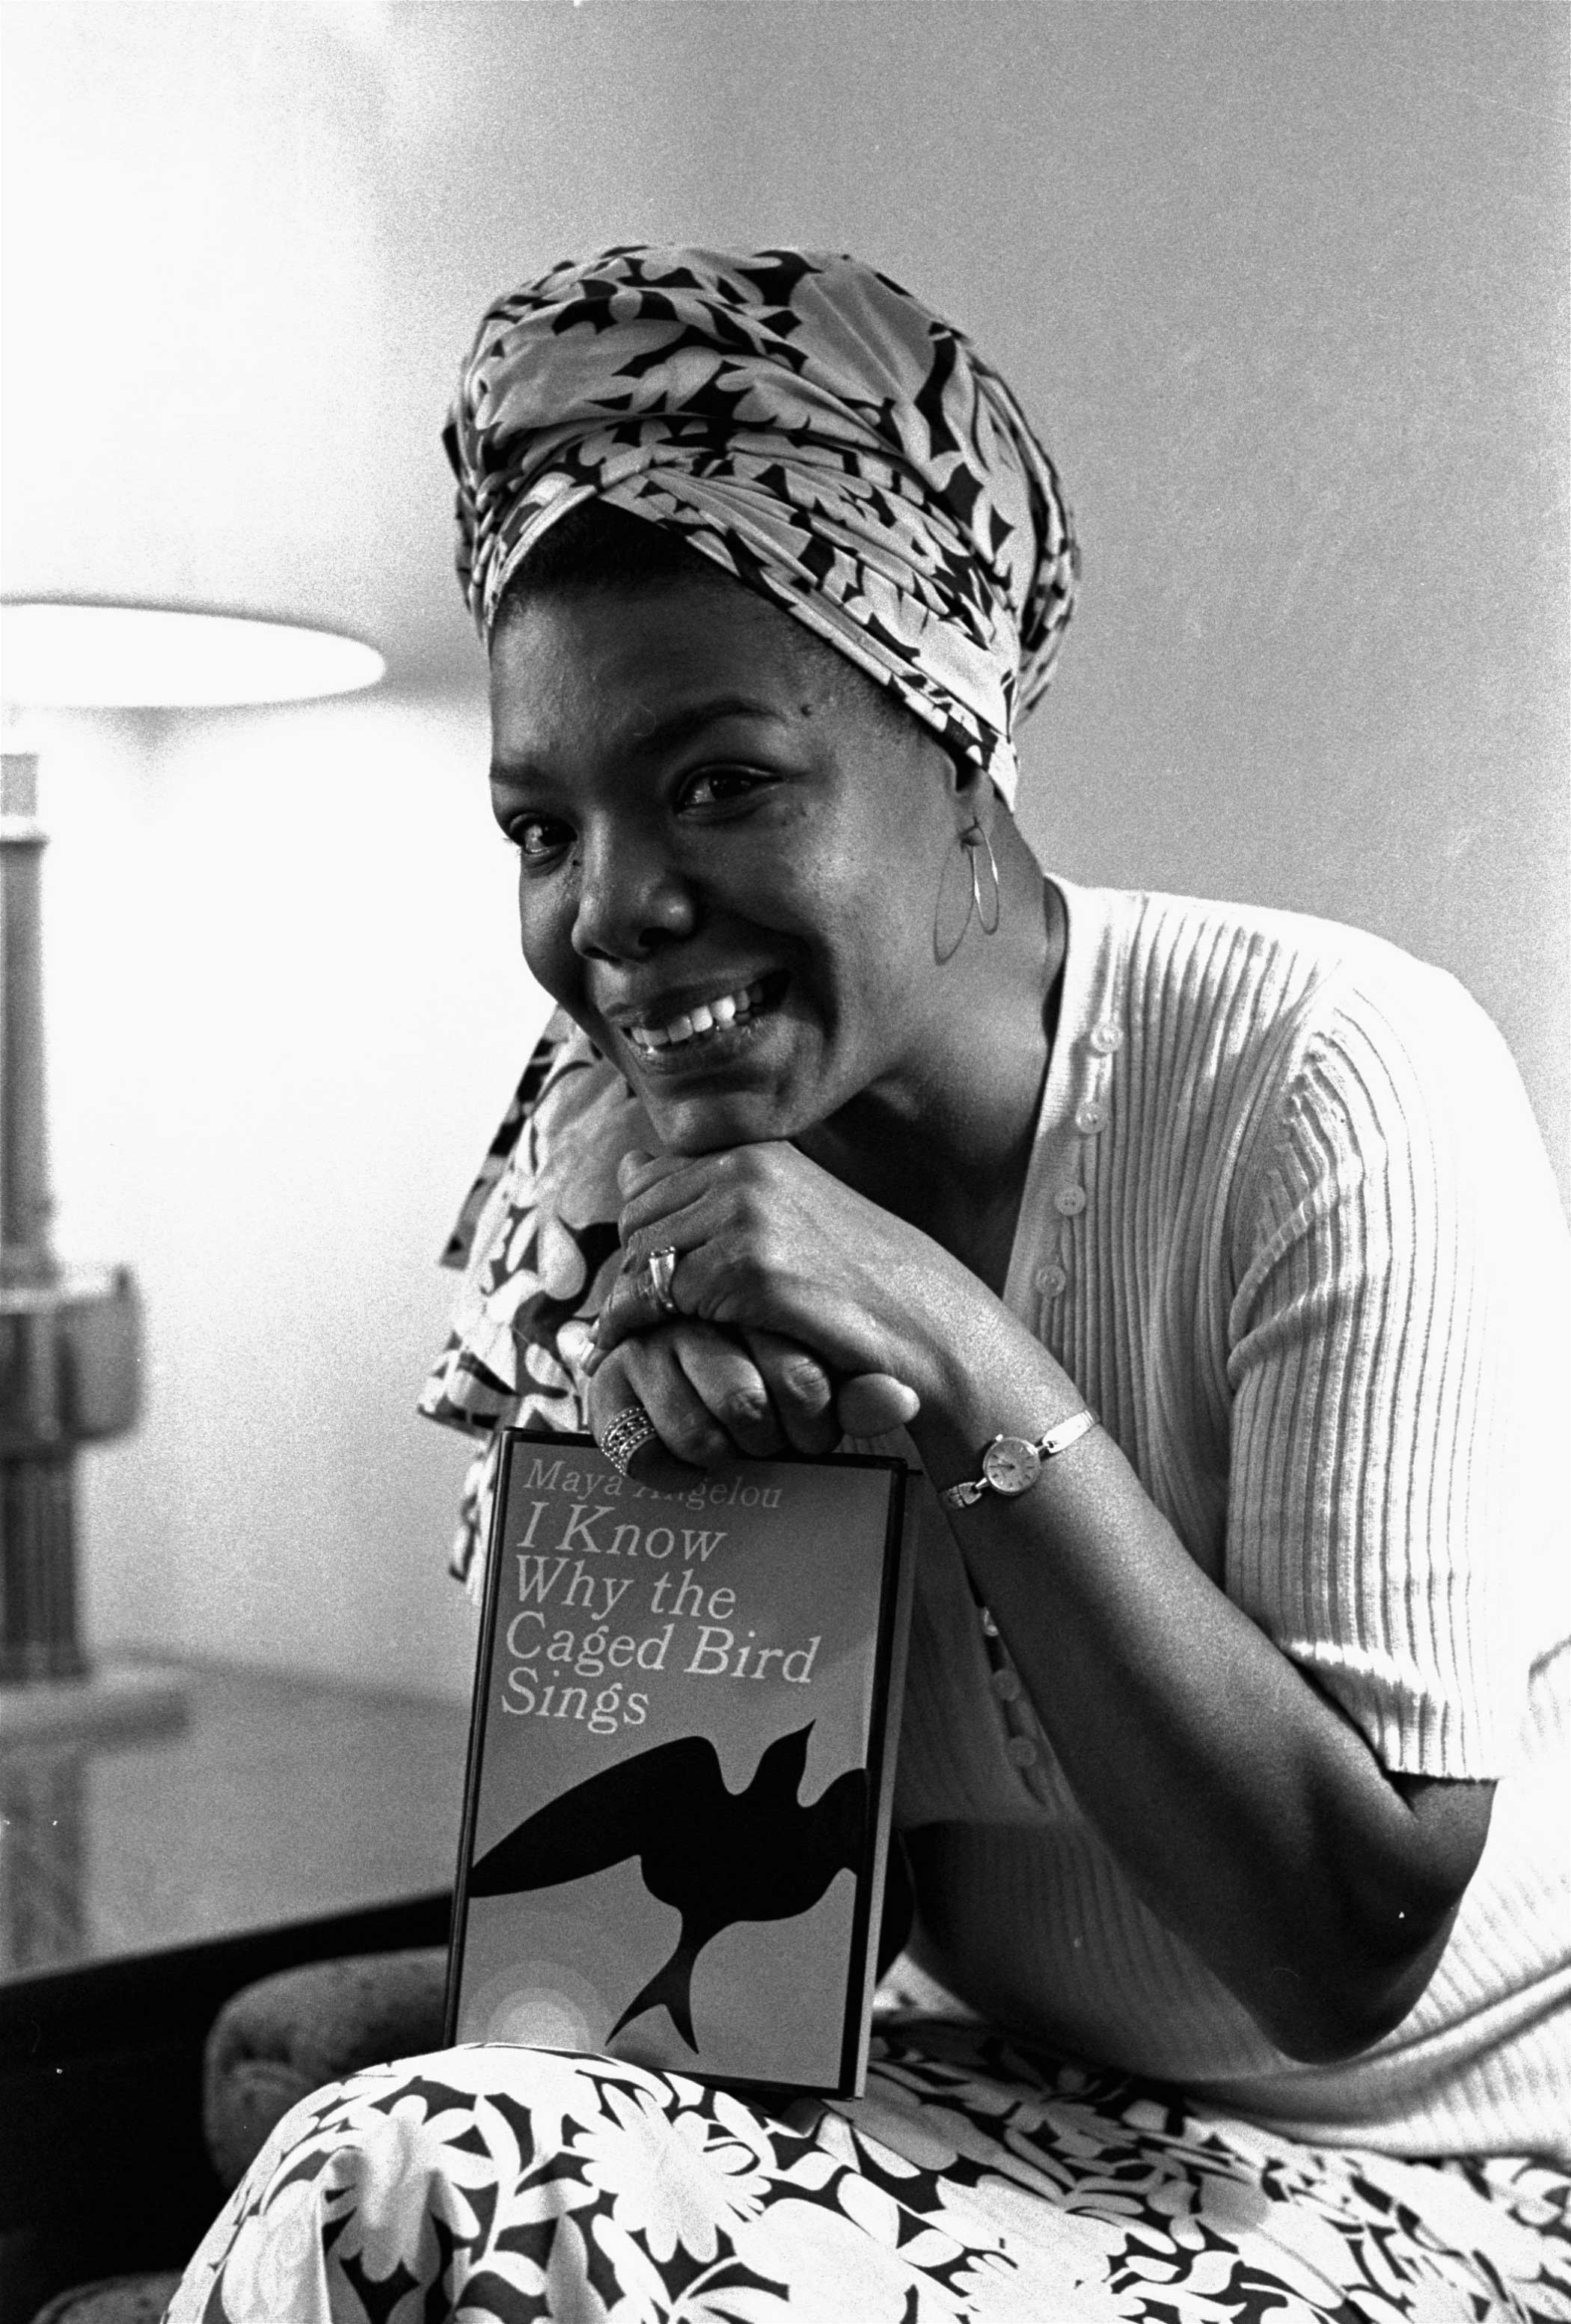 Maya Angelou with a copy of I Know Why the Caged Bird Sings on Nov. 3, 1971 in Hollywood, Calif.